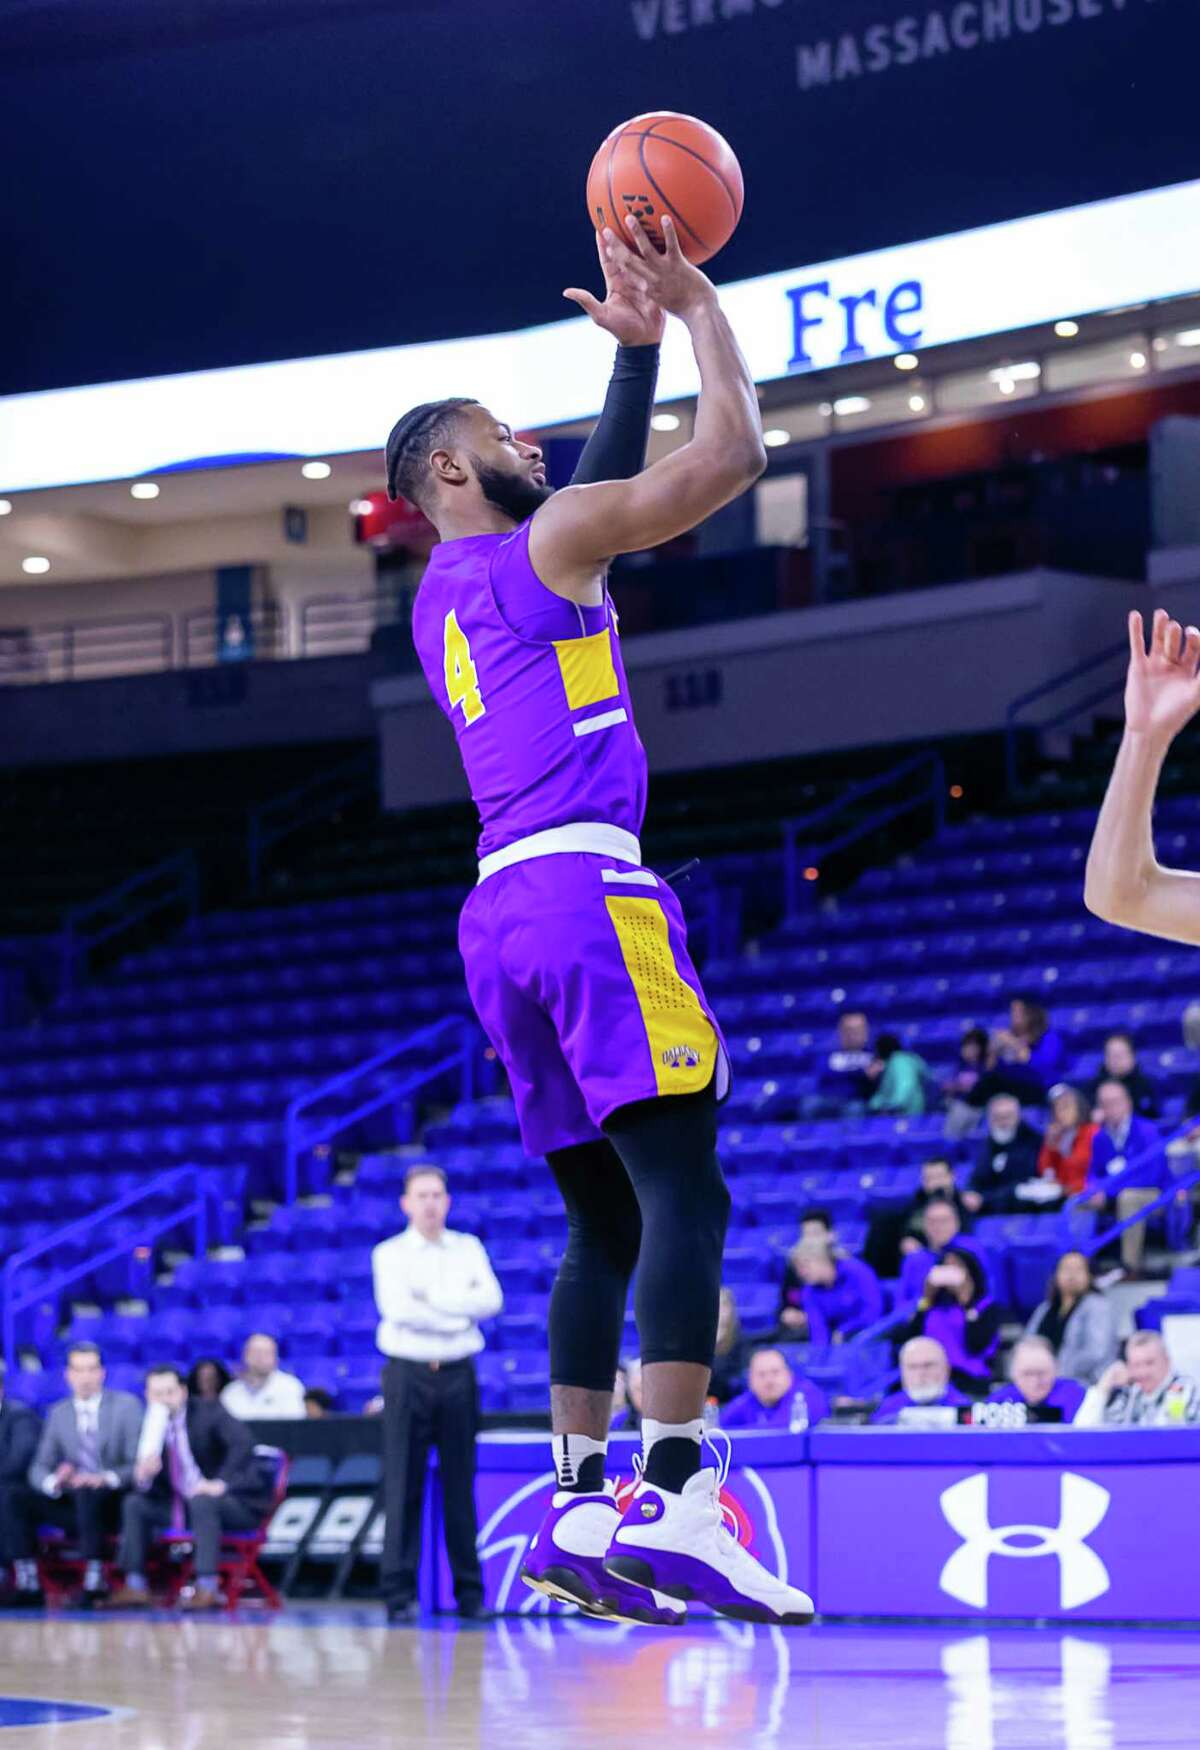 Ahmad Clark puts up a jumper against UMass Lowell during their game on Wednesday, Feb. 26, 2020, at the Tsongas Center. (Courtesy of UAlbany athletics)